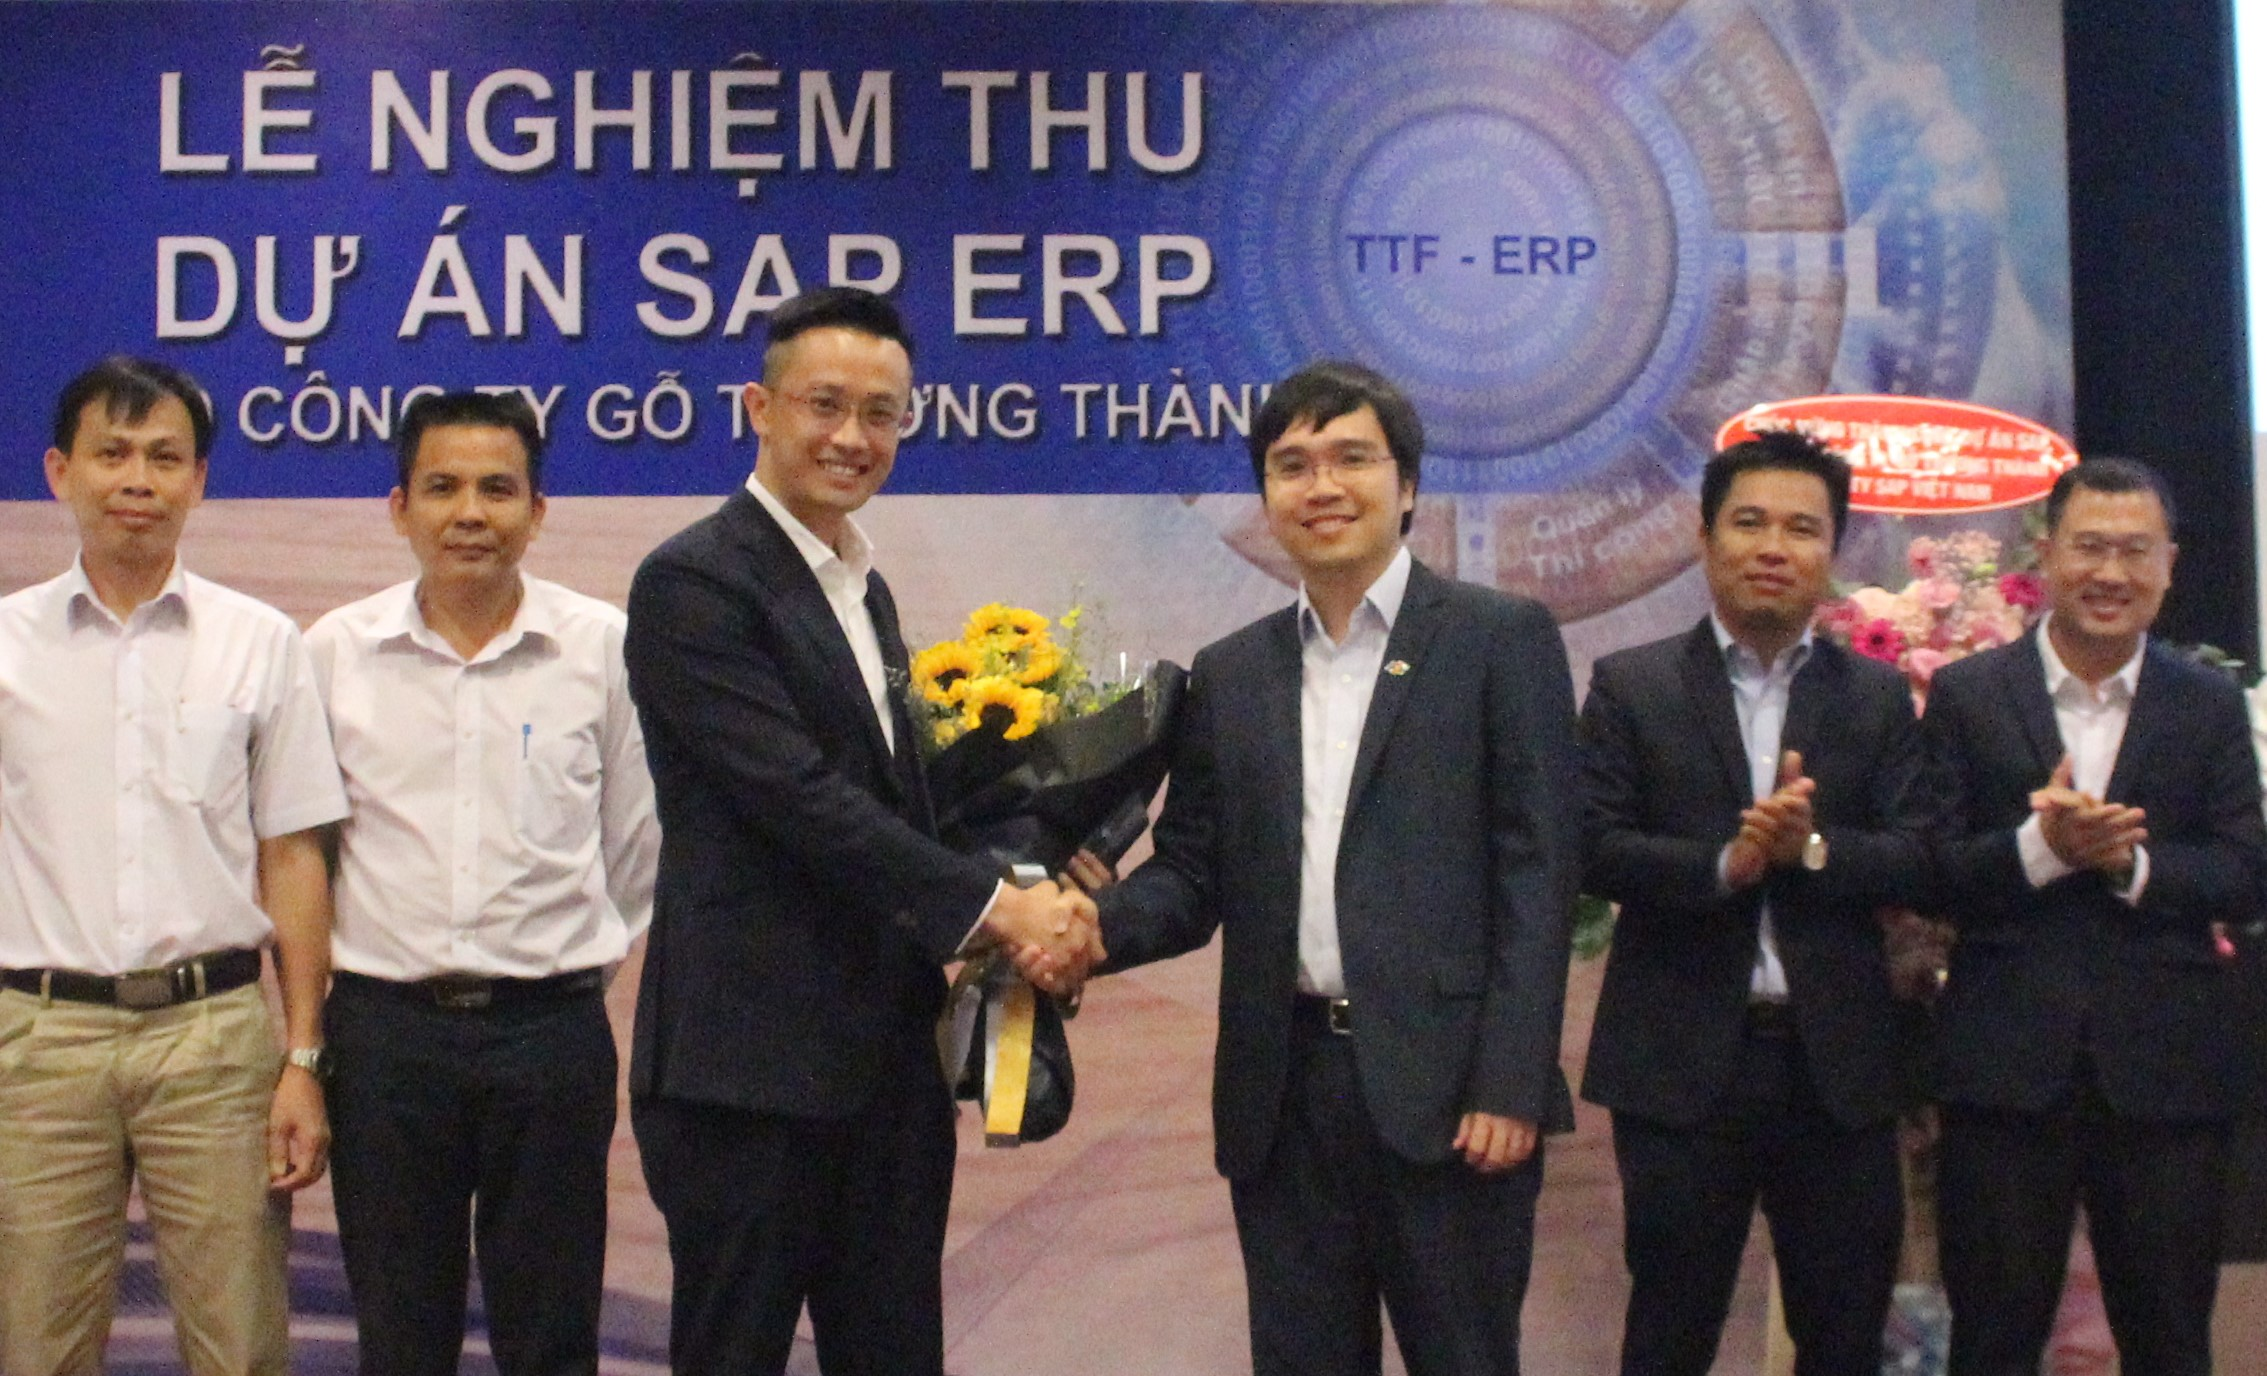 FPT IS and Truong Thanh Furniture Corporation successfully deploys SAP ERP solution